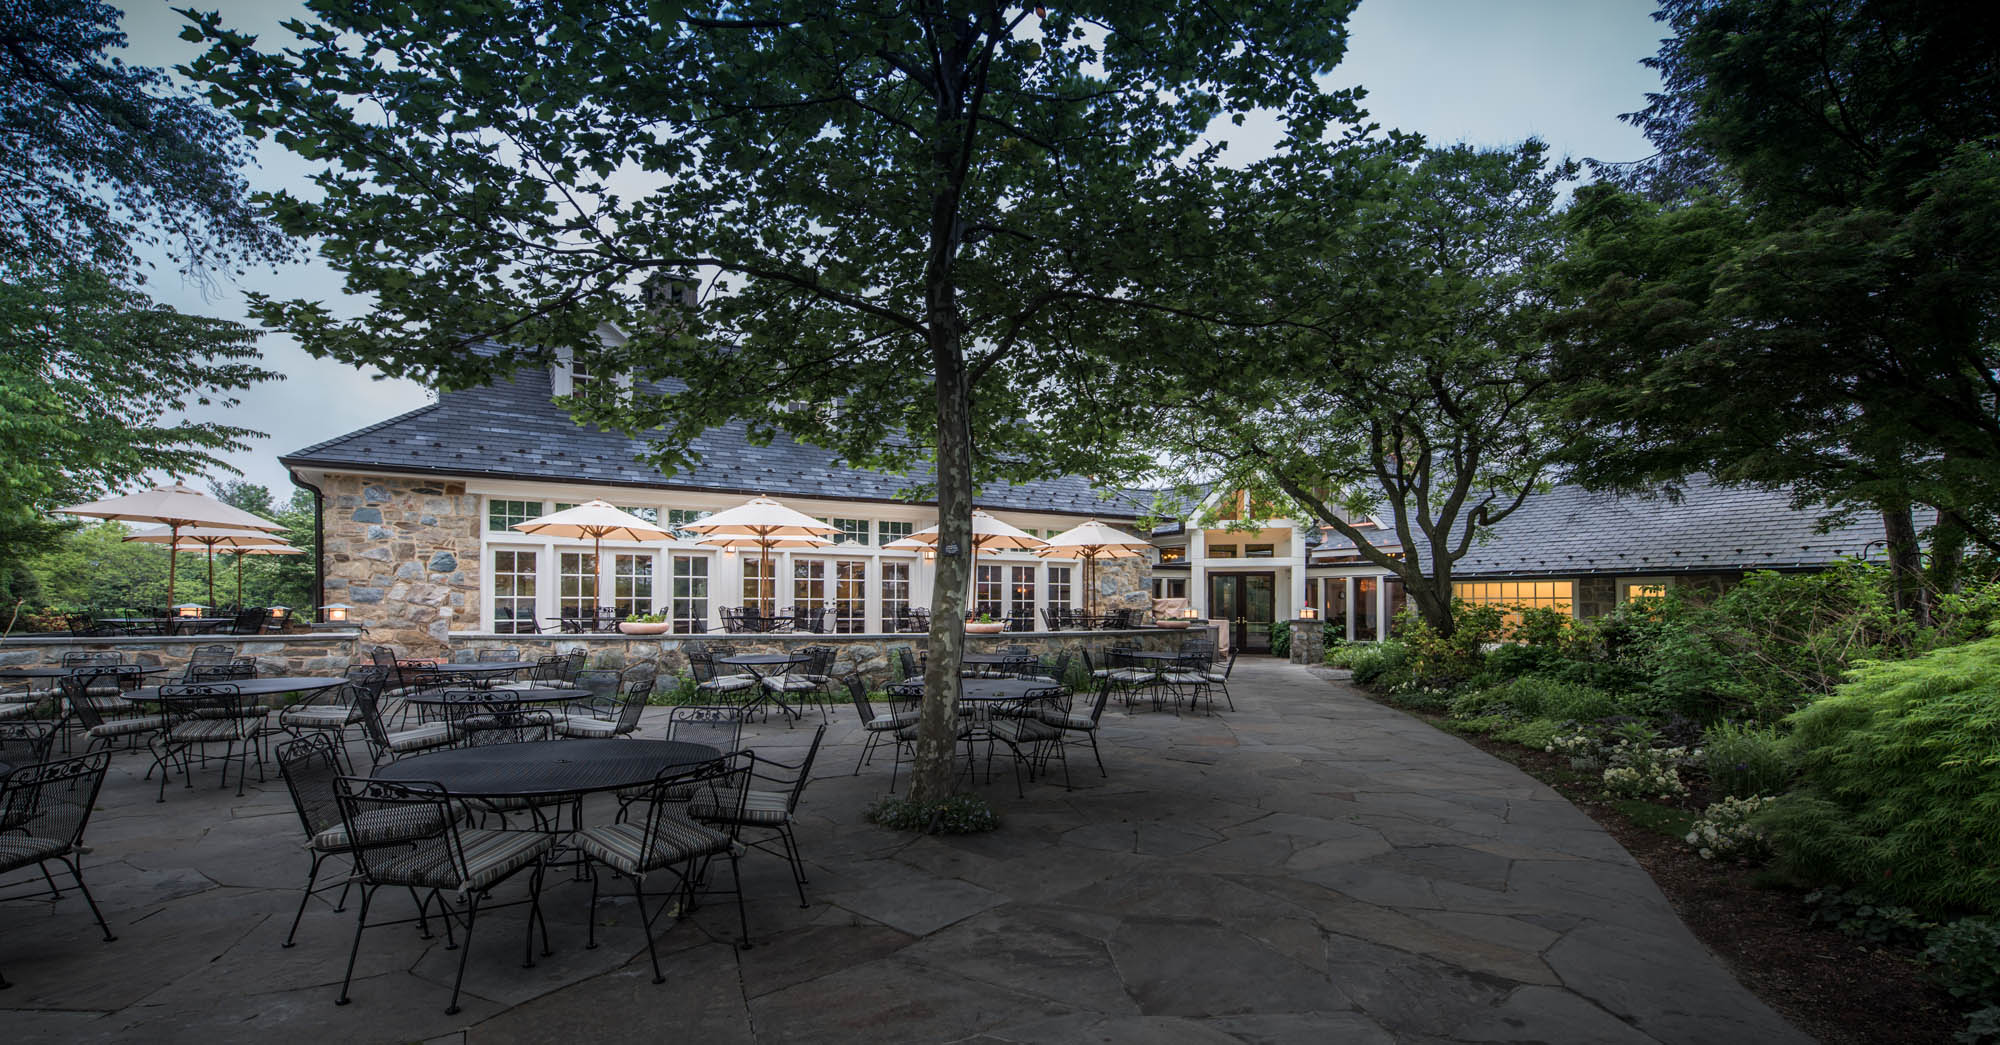 Chevy Chase Club Exterior Image 192897.jpg